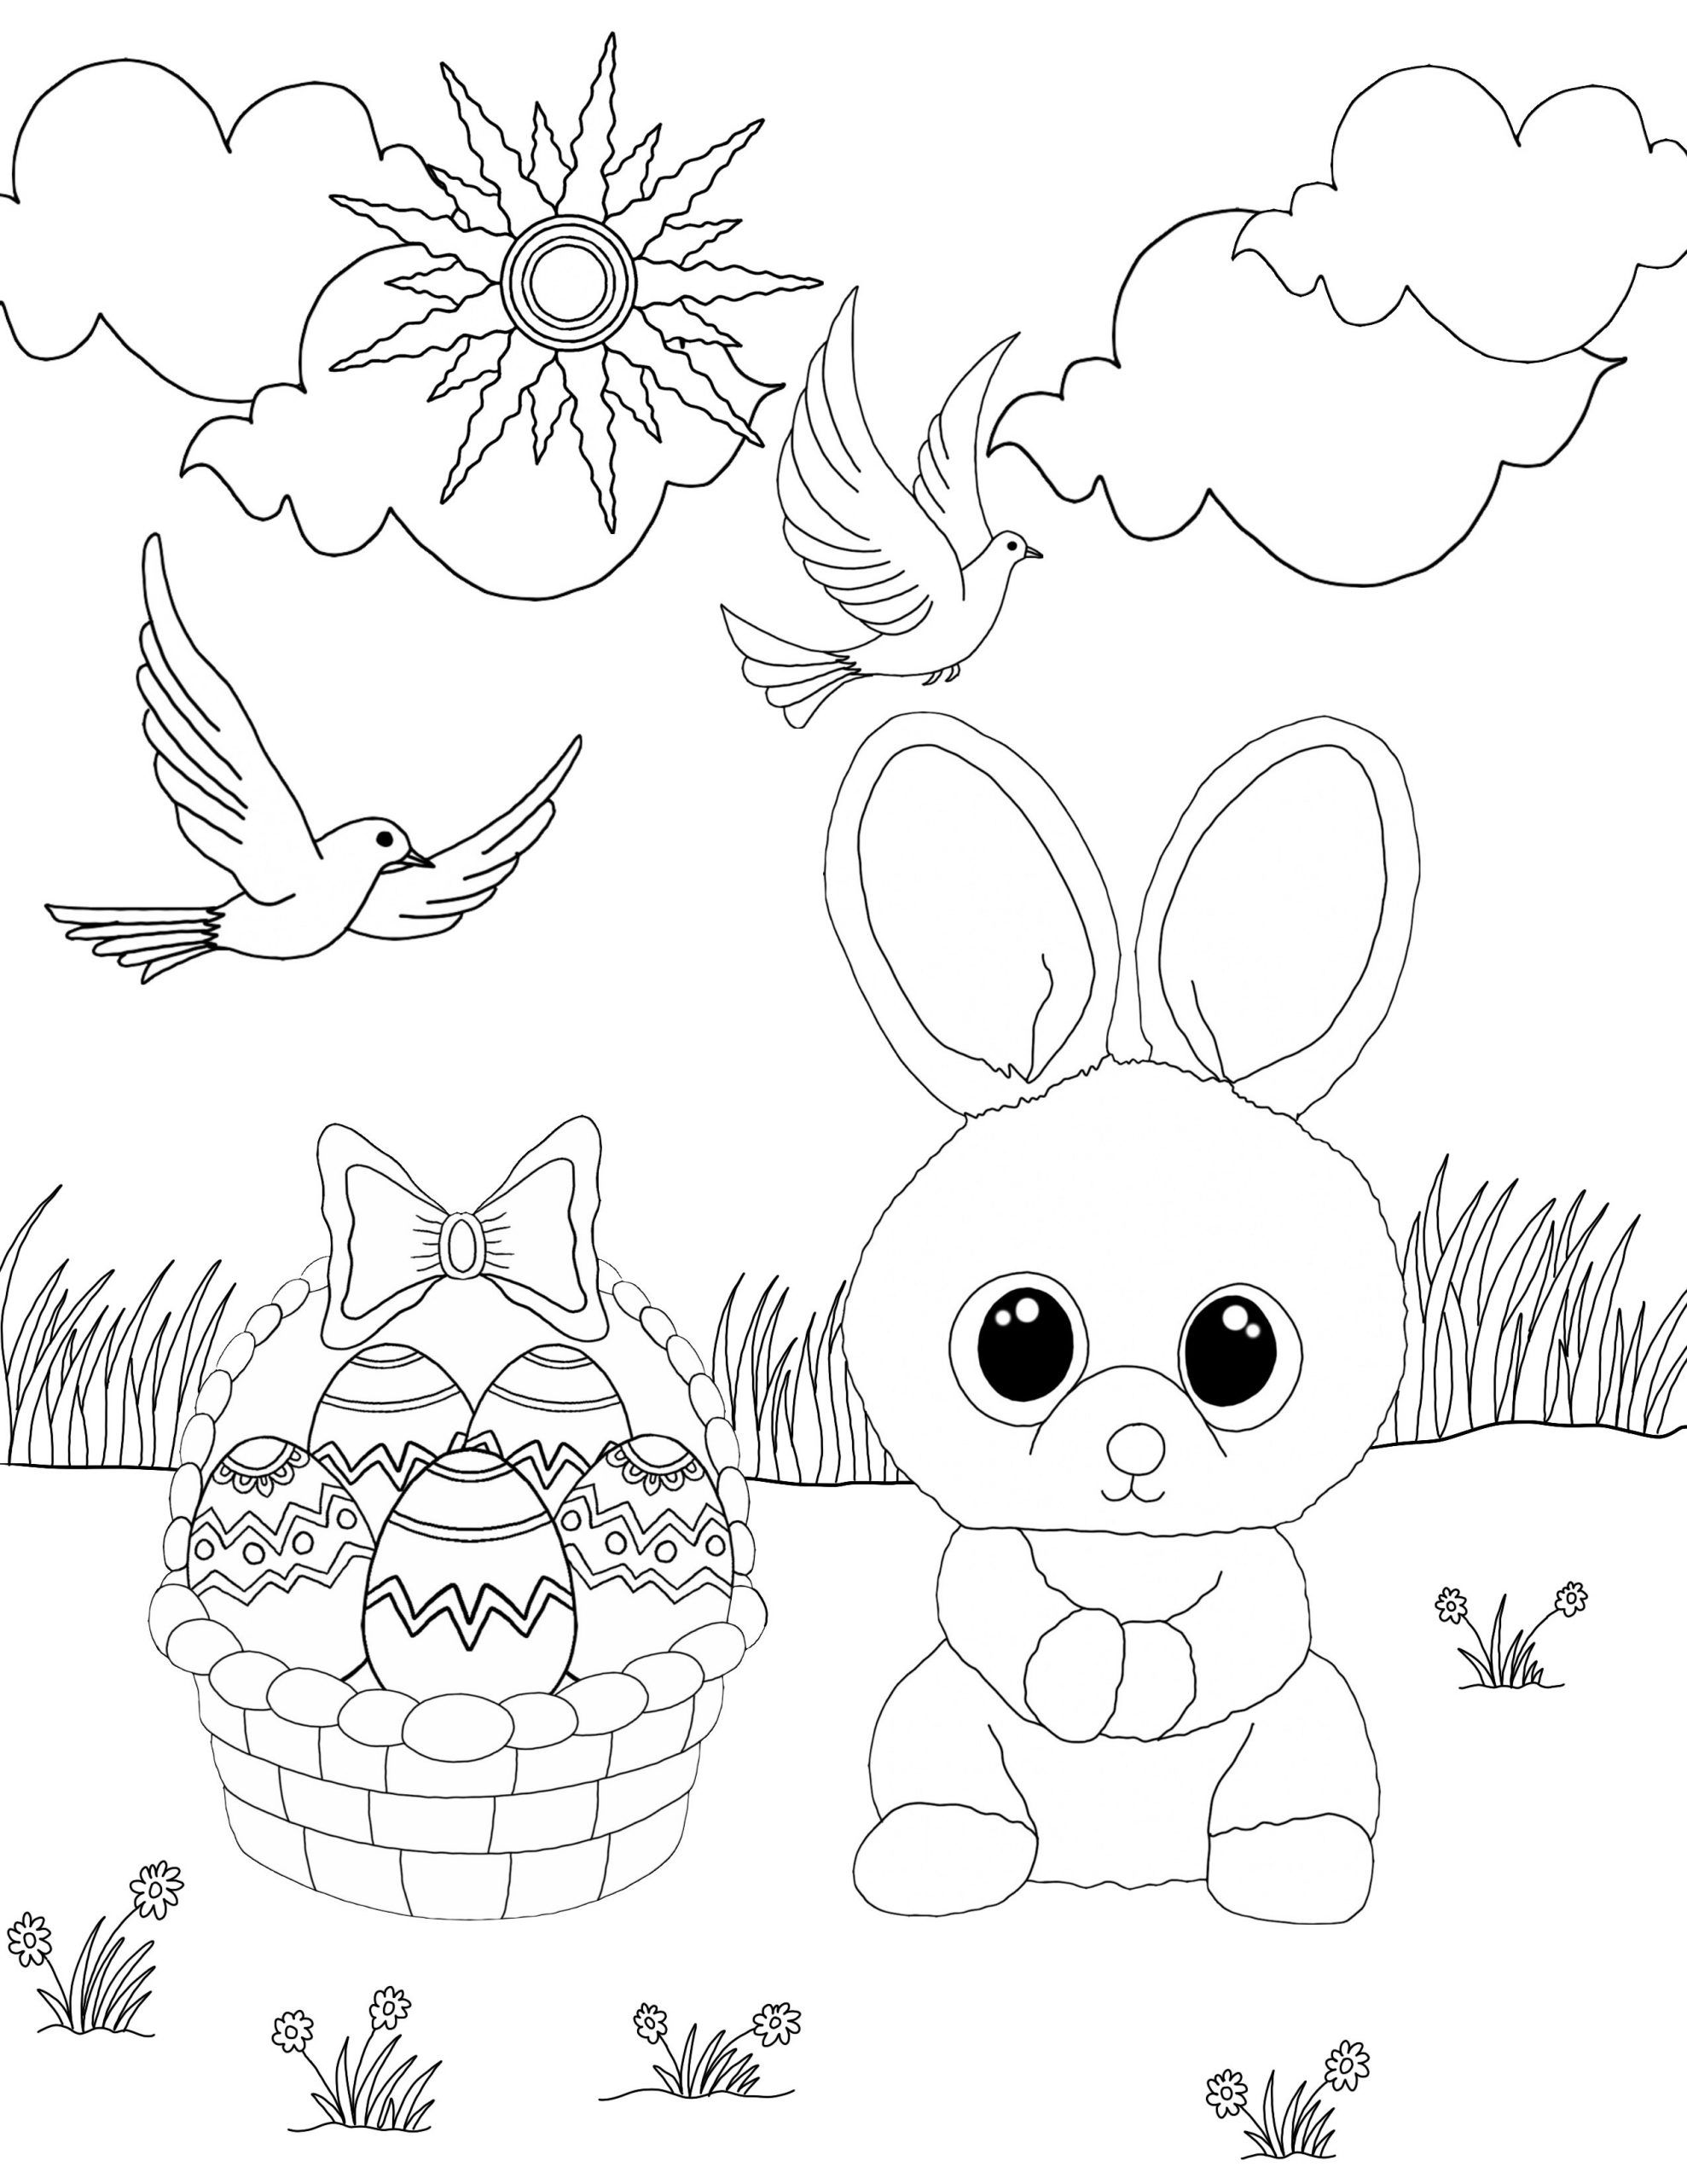 Baby Bunny Coloring Pages Rabbit Colouring Bugs Printable Easter